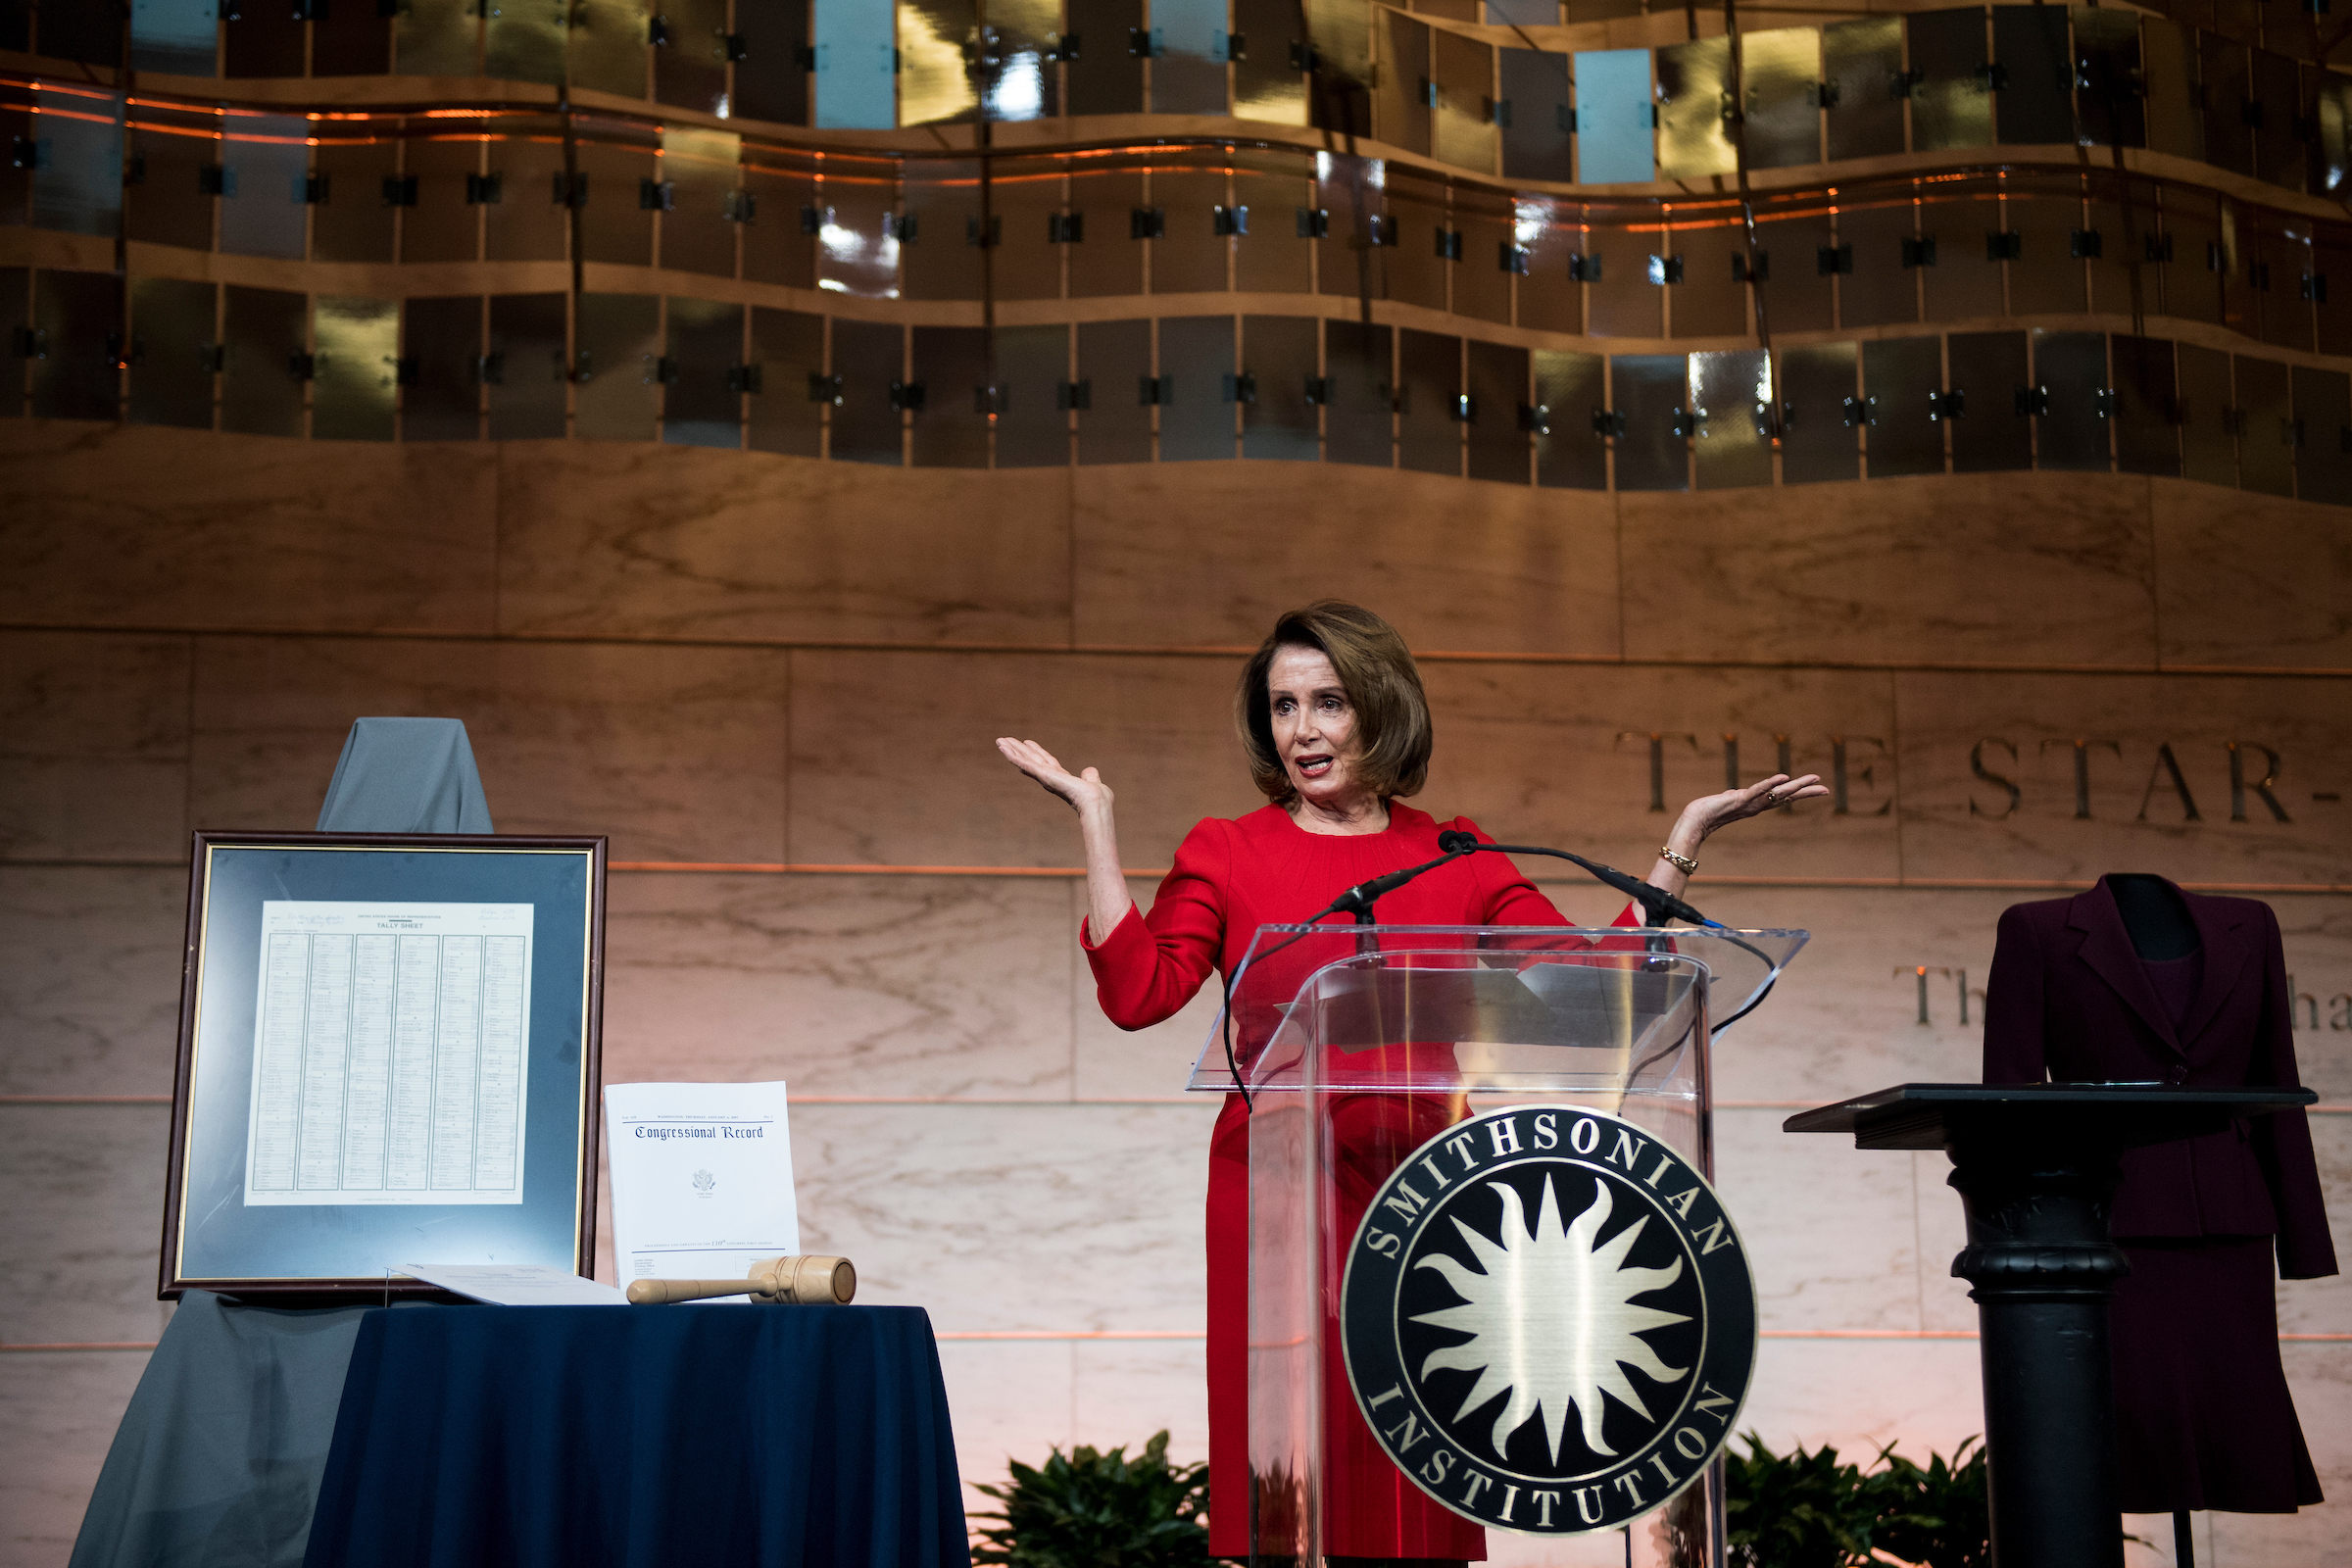 UNITED STATES - MARCH 7: House Minority Leader Nancy Pelosi, D-Calif., speaks at the The National Museum of American History where she donated items representing her term as the first female Speaker of the House on Wednesday, March 7, 2018. Items donated included her gavel, the tally sheet from her election as Speaker and a dress. (Photo By Bill Clark/CQ Roll Call)